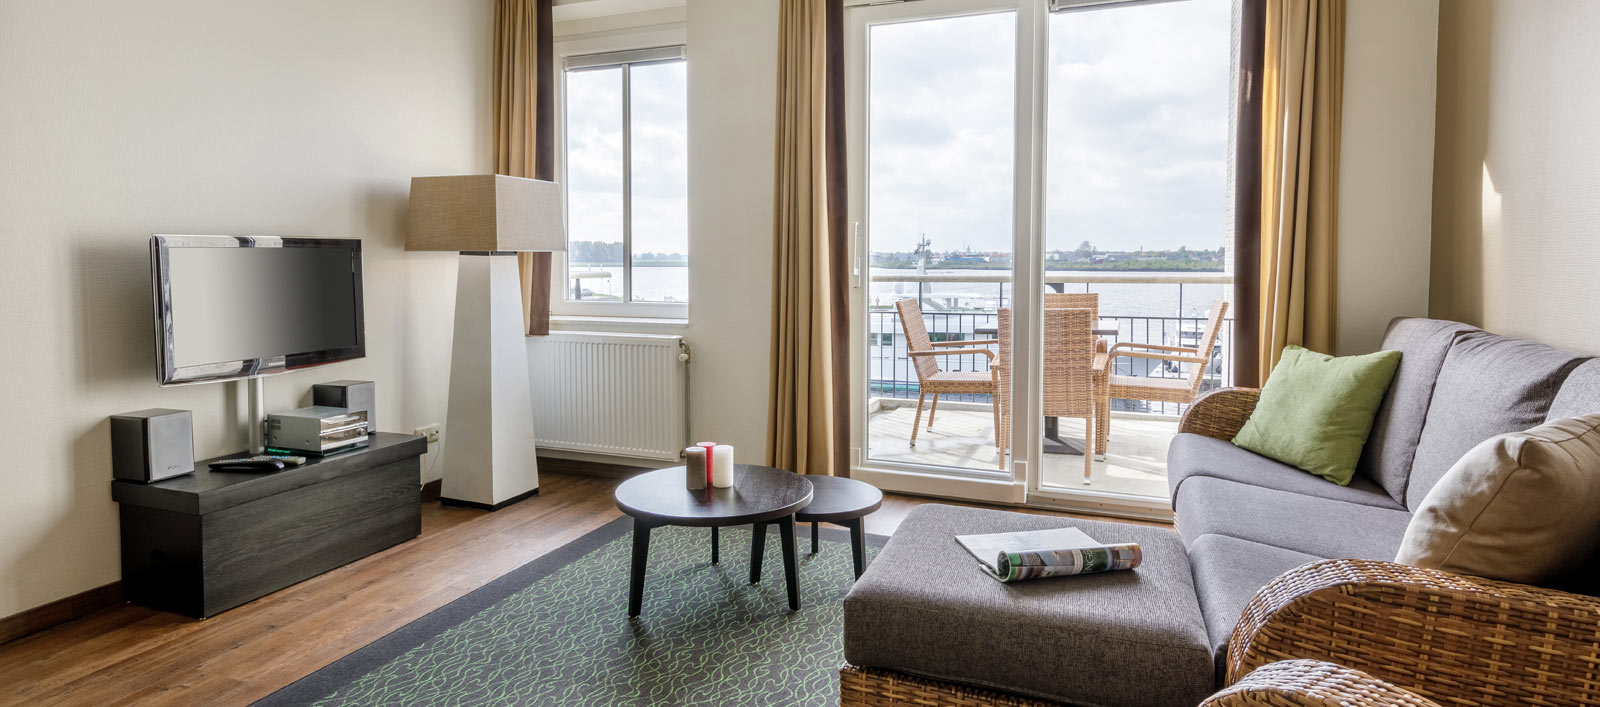 Completely restyled Waterfront Suites